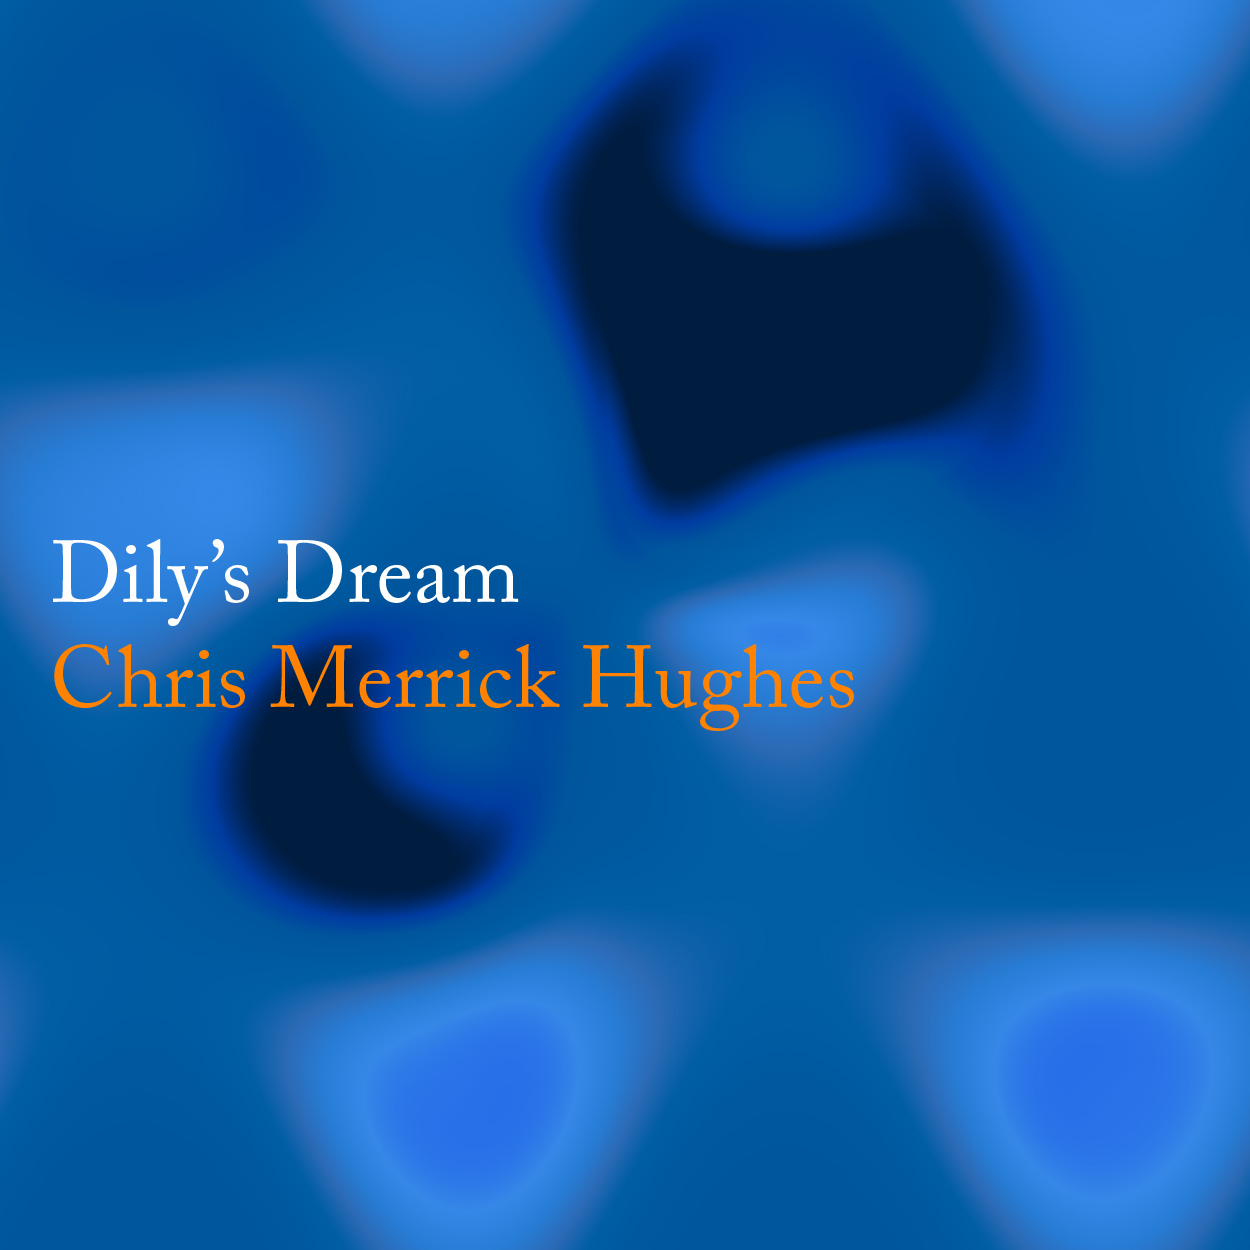 Chris Merrick Hughes - Dily's Dream (Download Track)